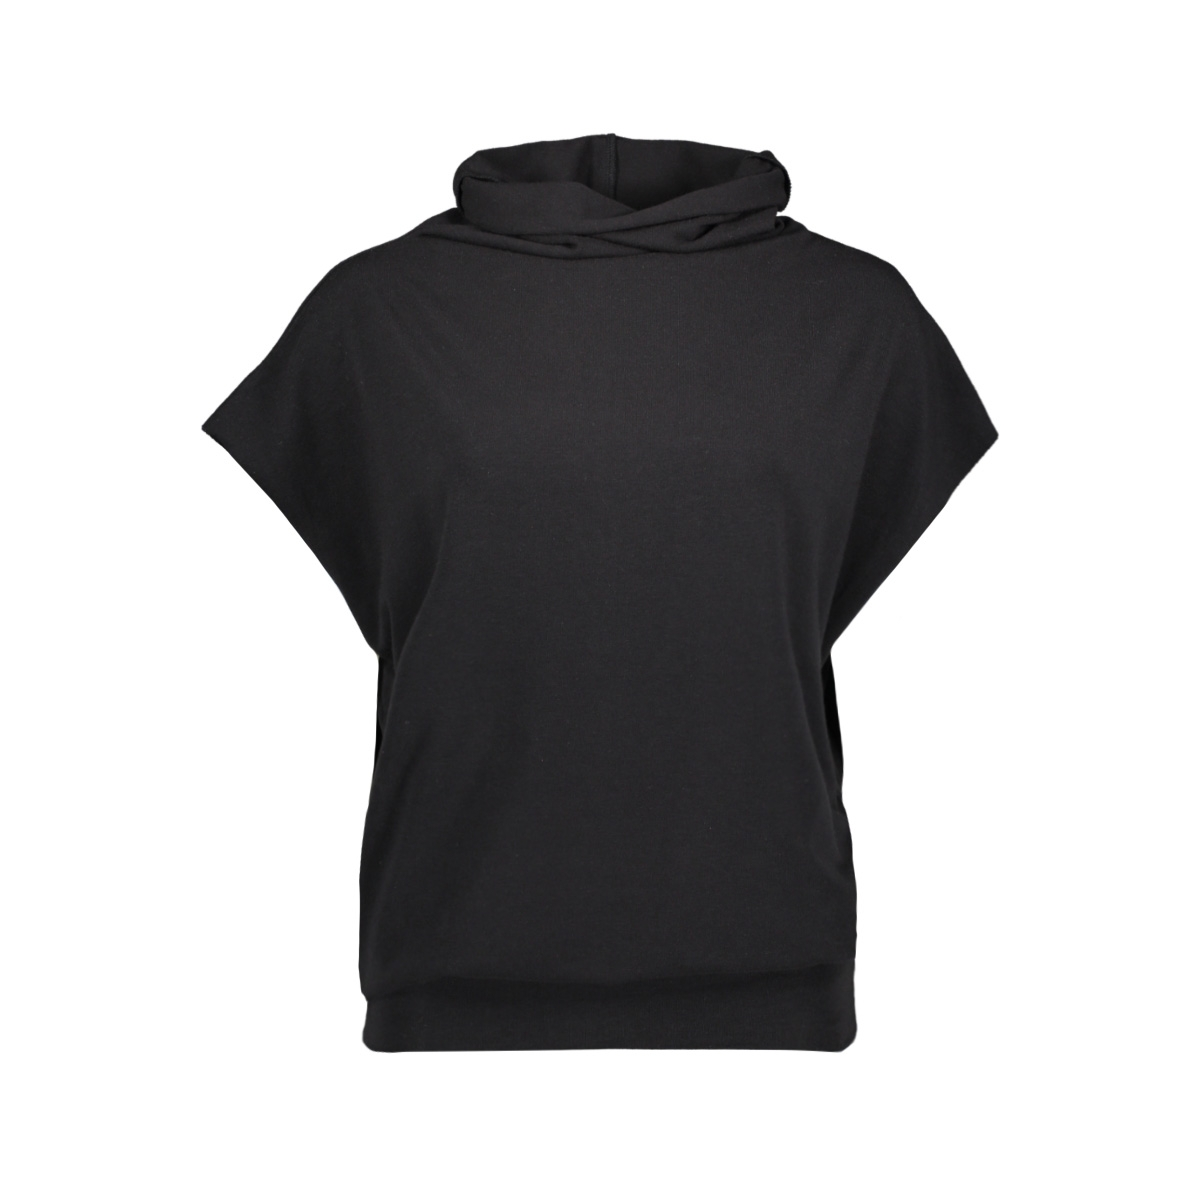 soft high neck top 20 464 0203 10 days t-shirt black